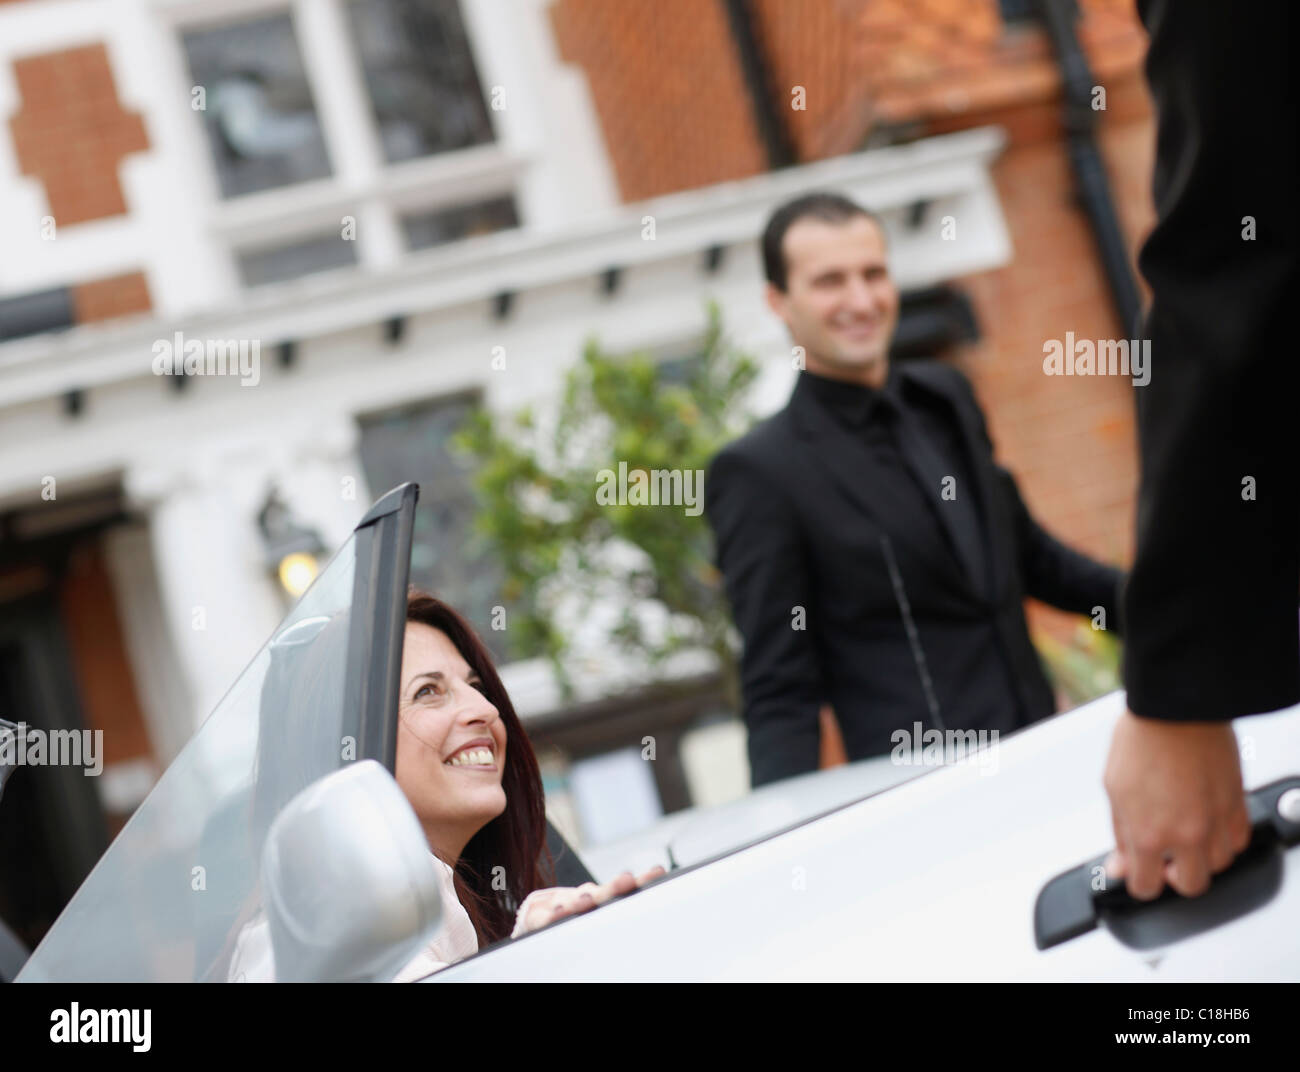 Guest arrival - Stock Image